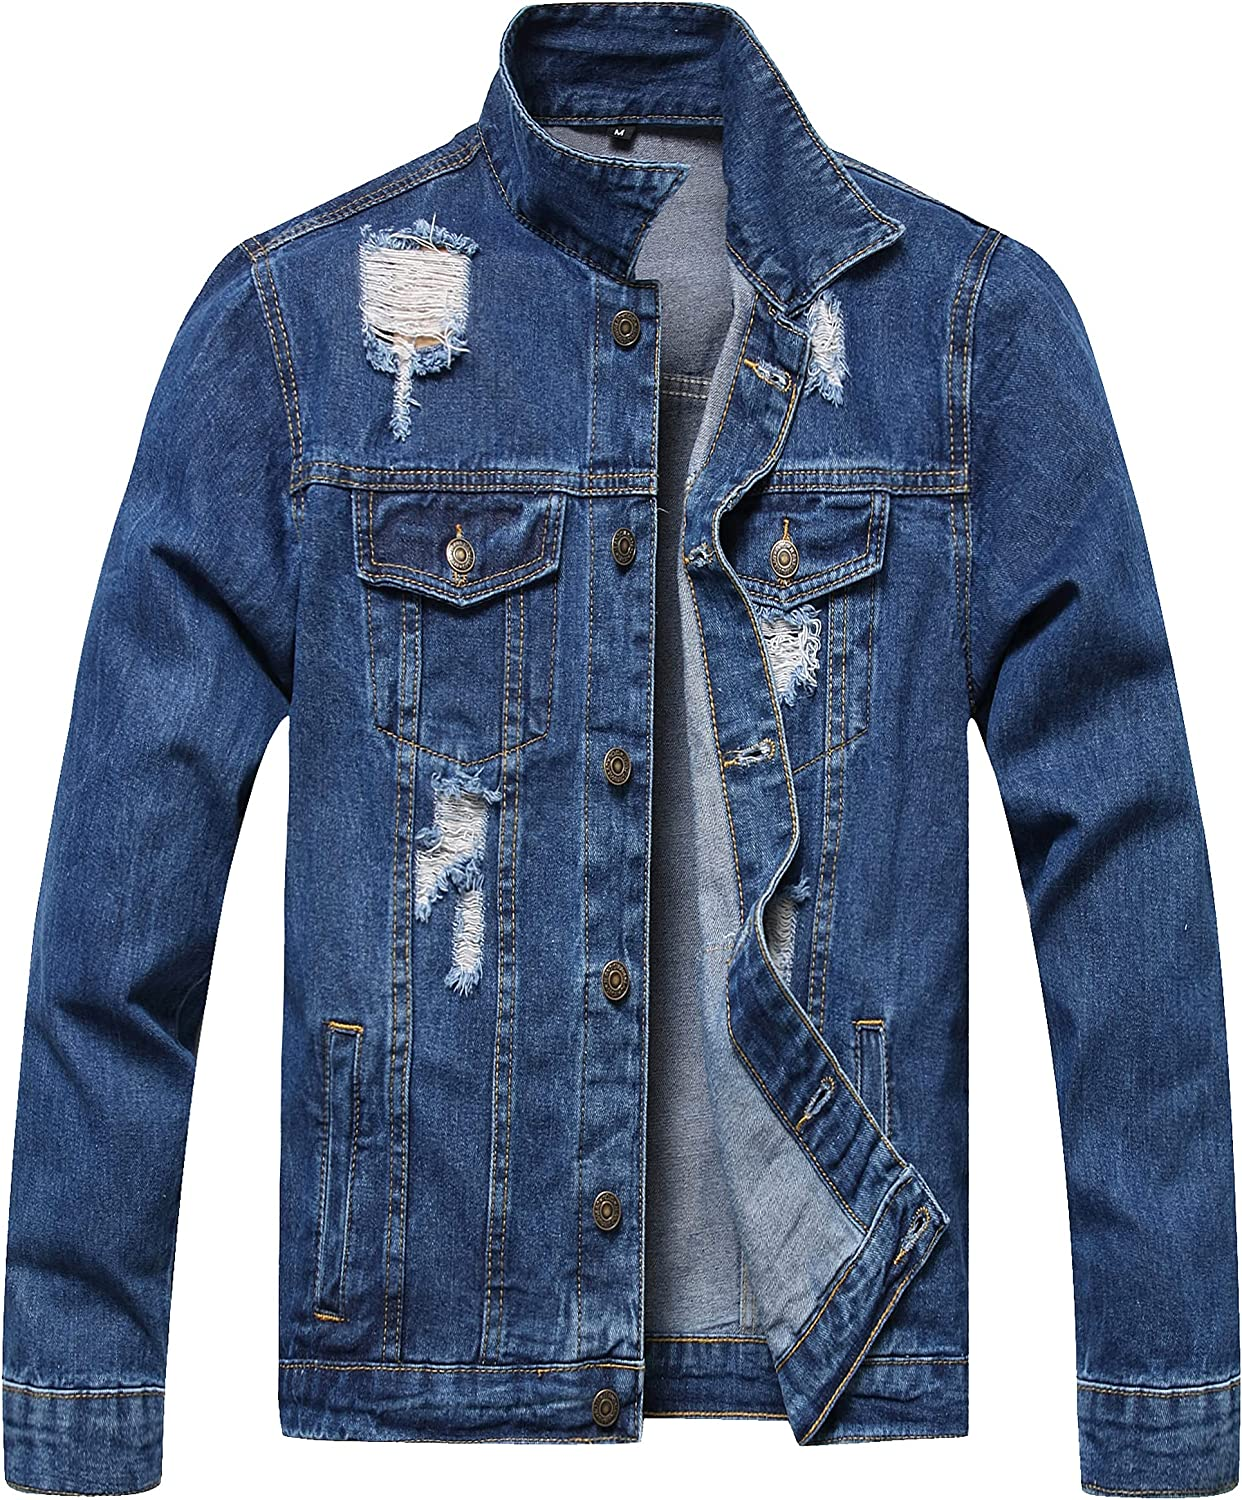 JCBYTJSW Distressed Ripped Denim Jacket Men's sold out New mail order Slim